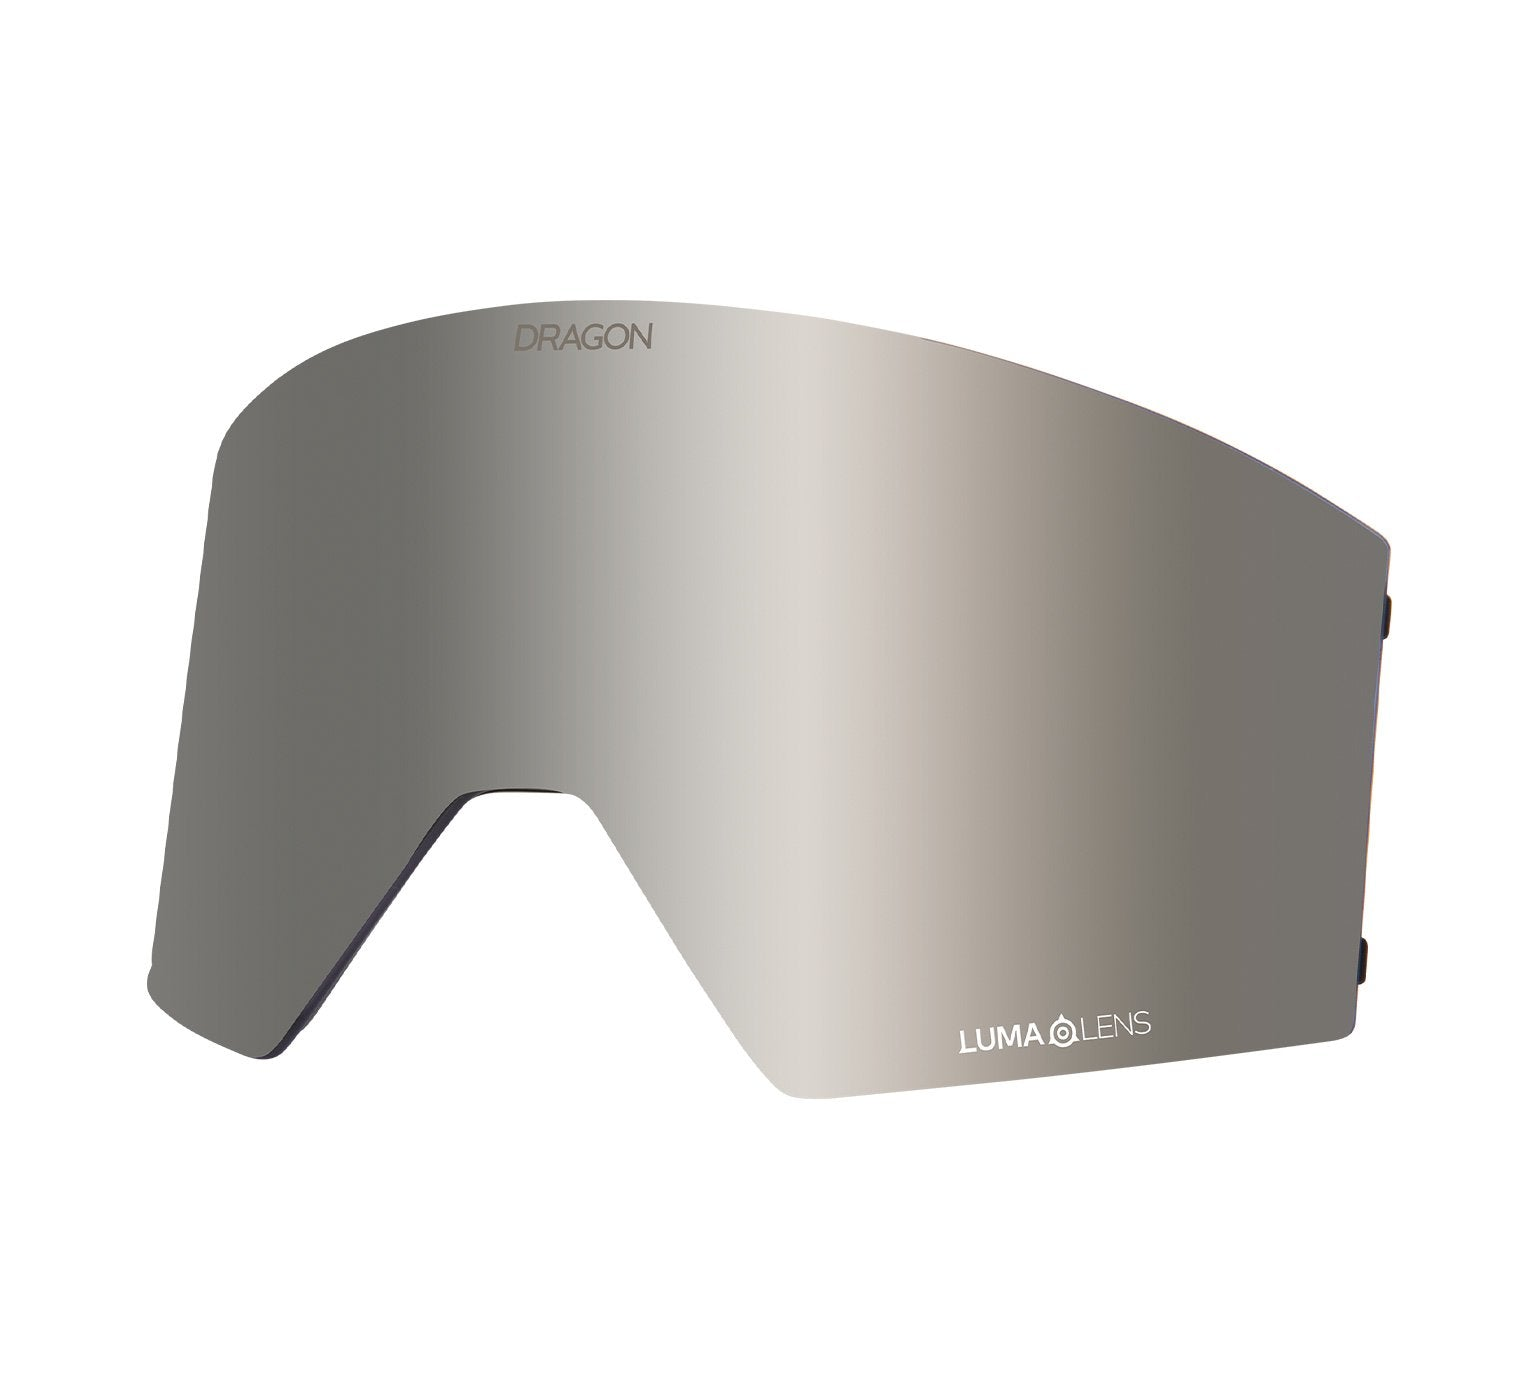 RVX OTG Replacement Lens ; Lumalens Silver Ionized